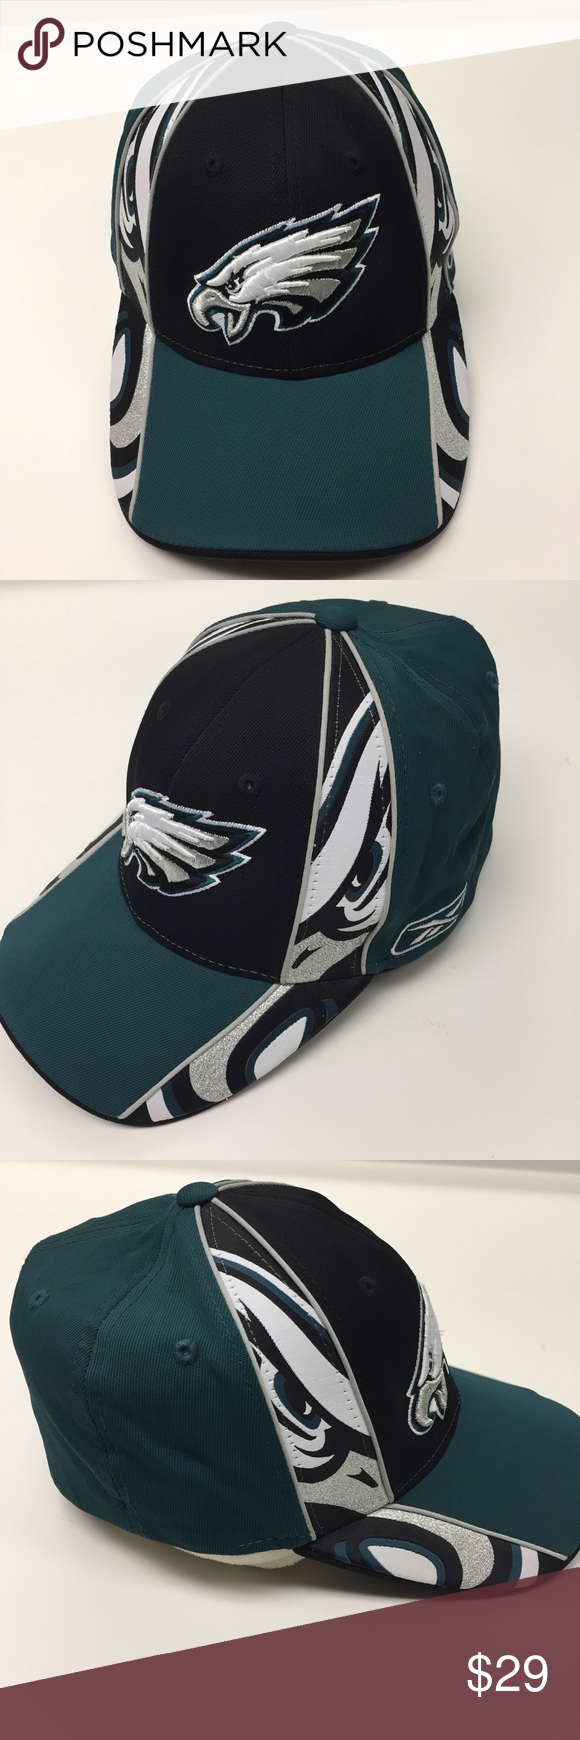 PHILADELPHIA EAGLES Reebok Hat Philadelphia Eagles Reebok NFL hat in  excellent condition. Rare Eagles style 84299f763